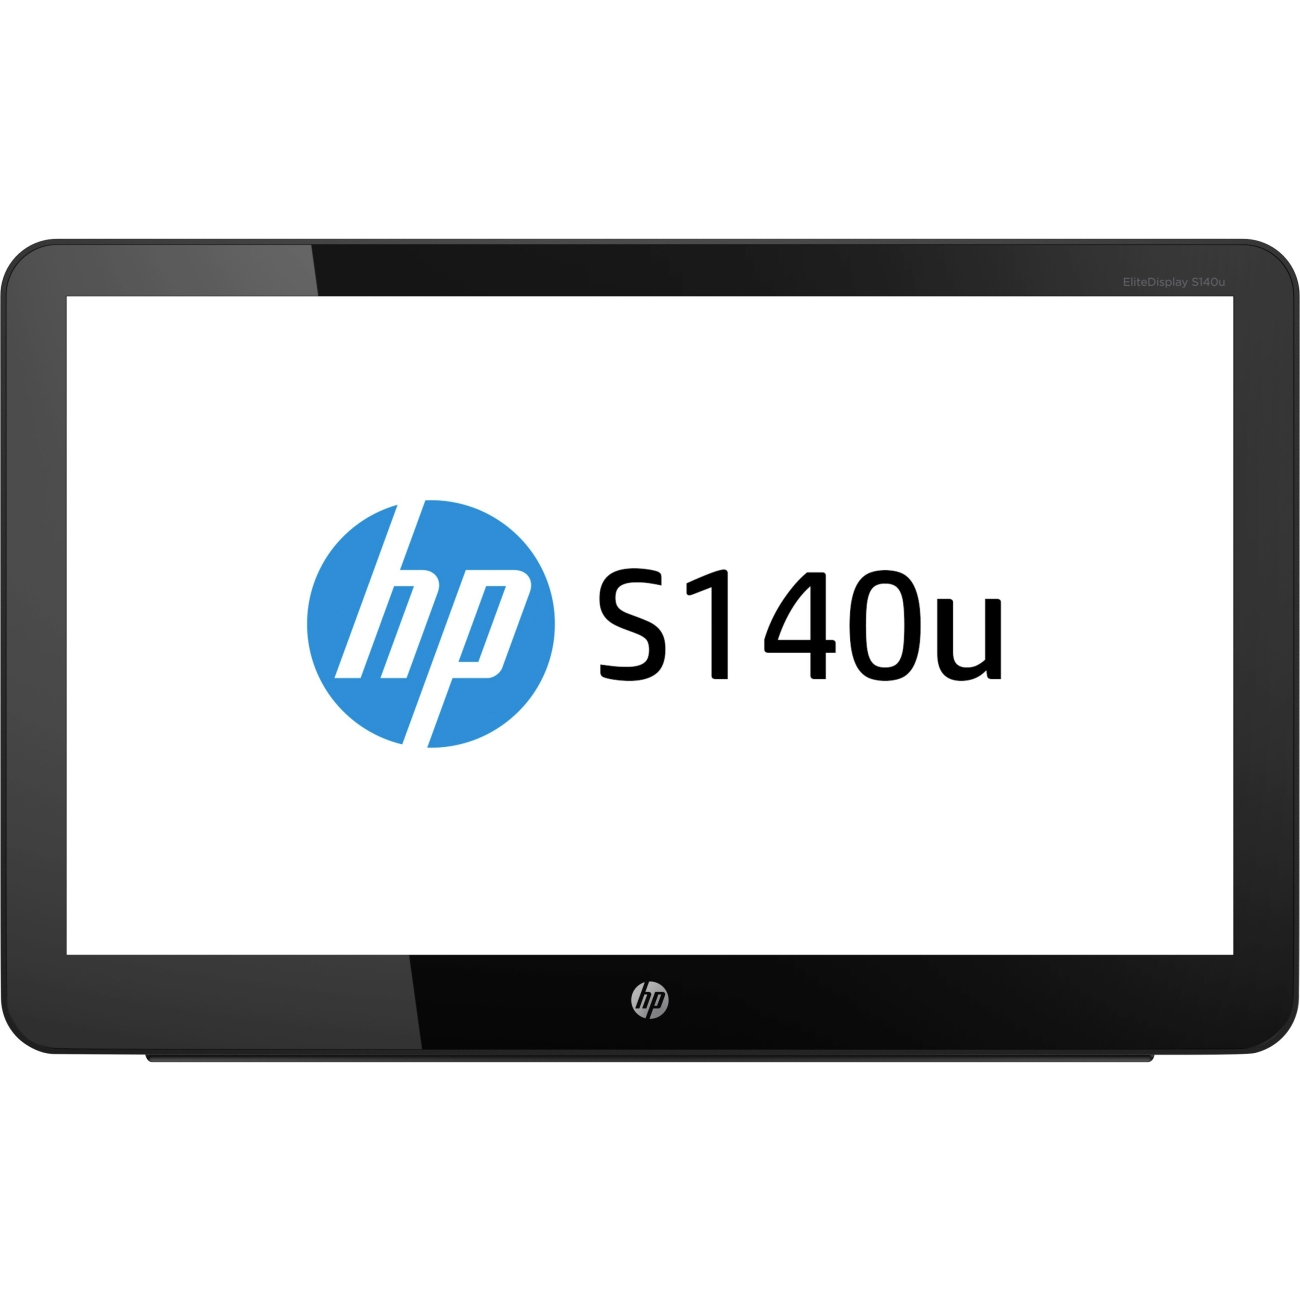 "HP Business S140u 14"" Led Lcd Monitor - 16:9 - 8 Ms - 160..."